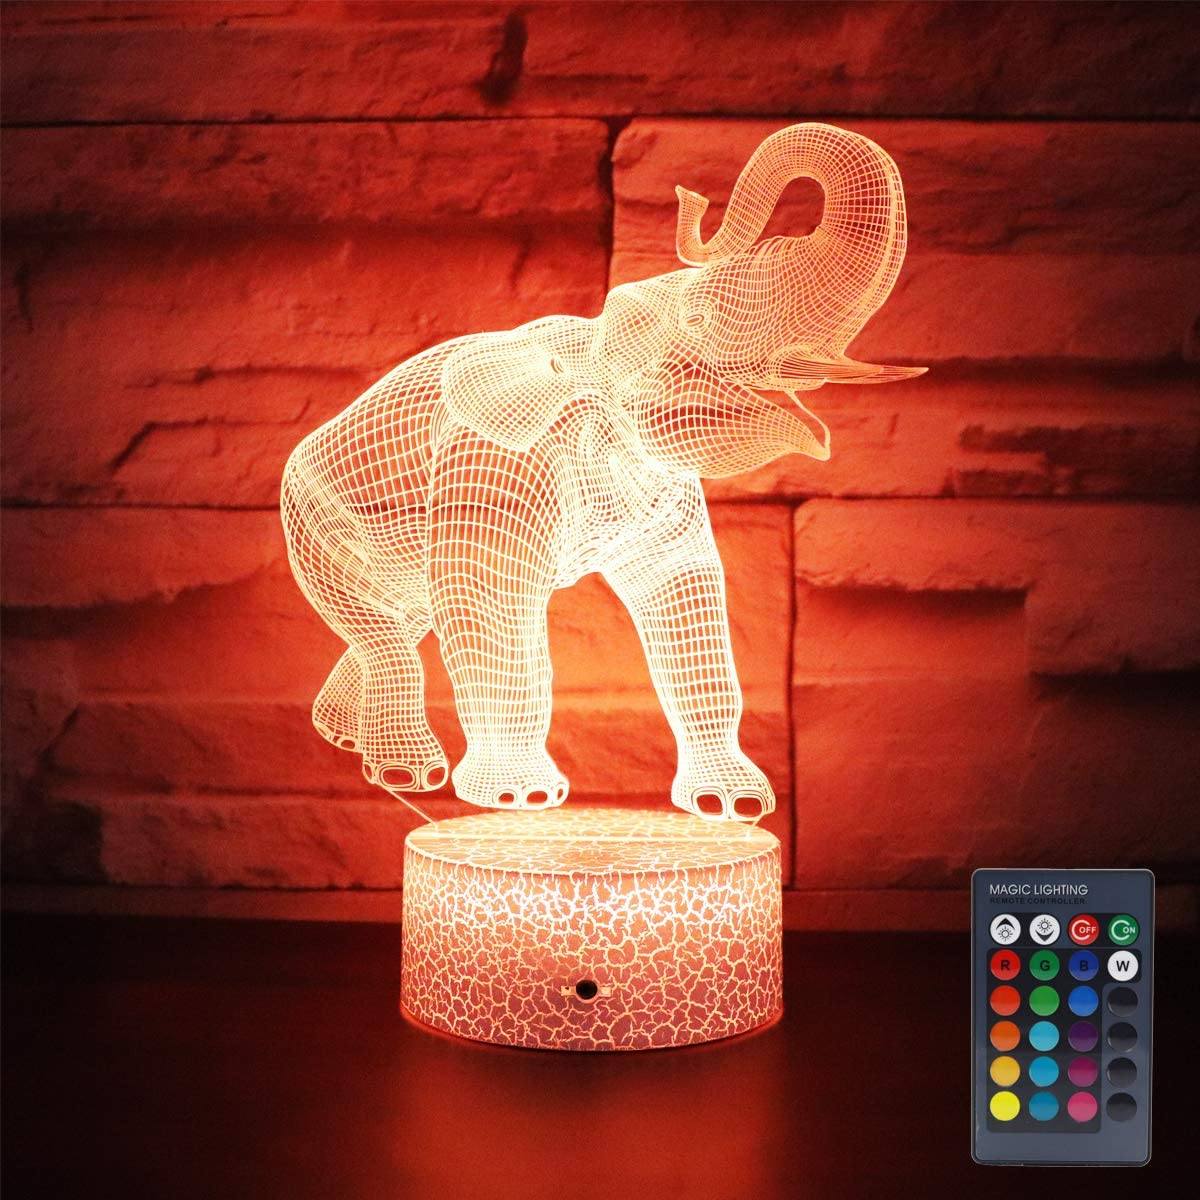 Hguangs Elephant Lamp Gift 16 Colors Desk Table Night Light for Kids Party Supplies Birthday Valentine's Day Lover Boy Girl (Elephant Shape)